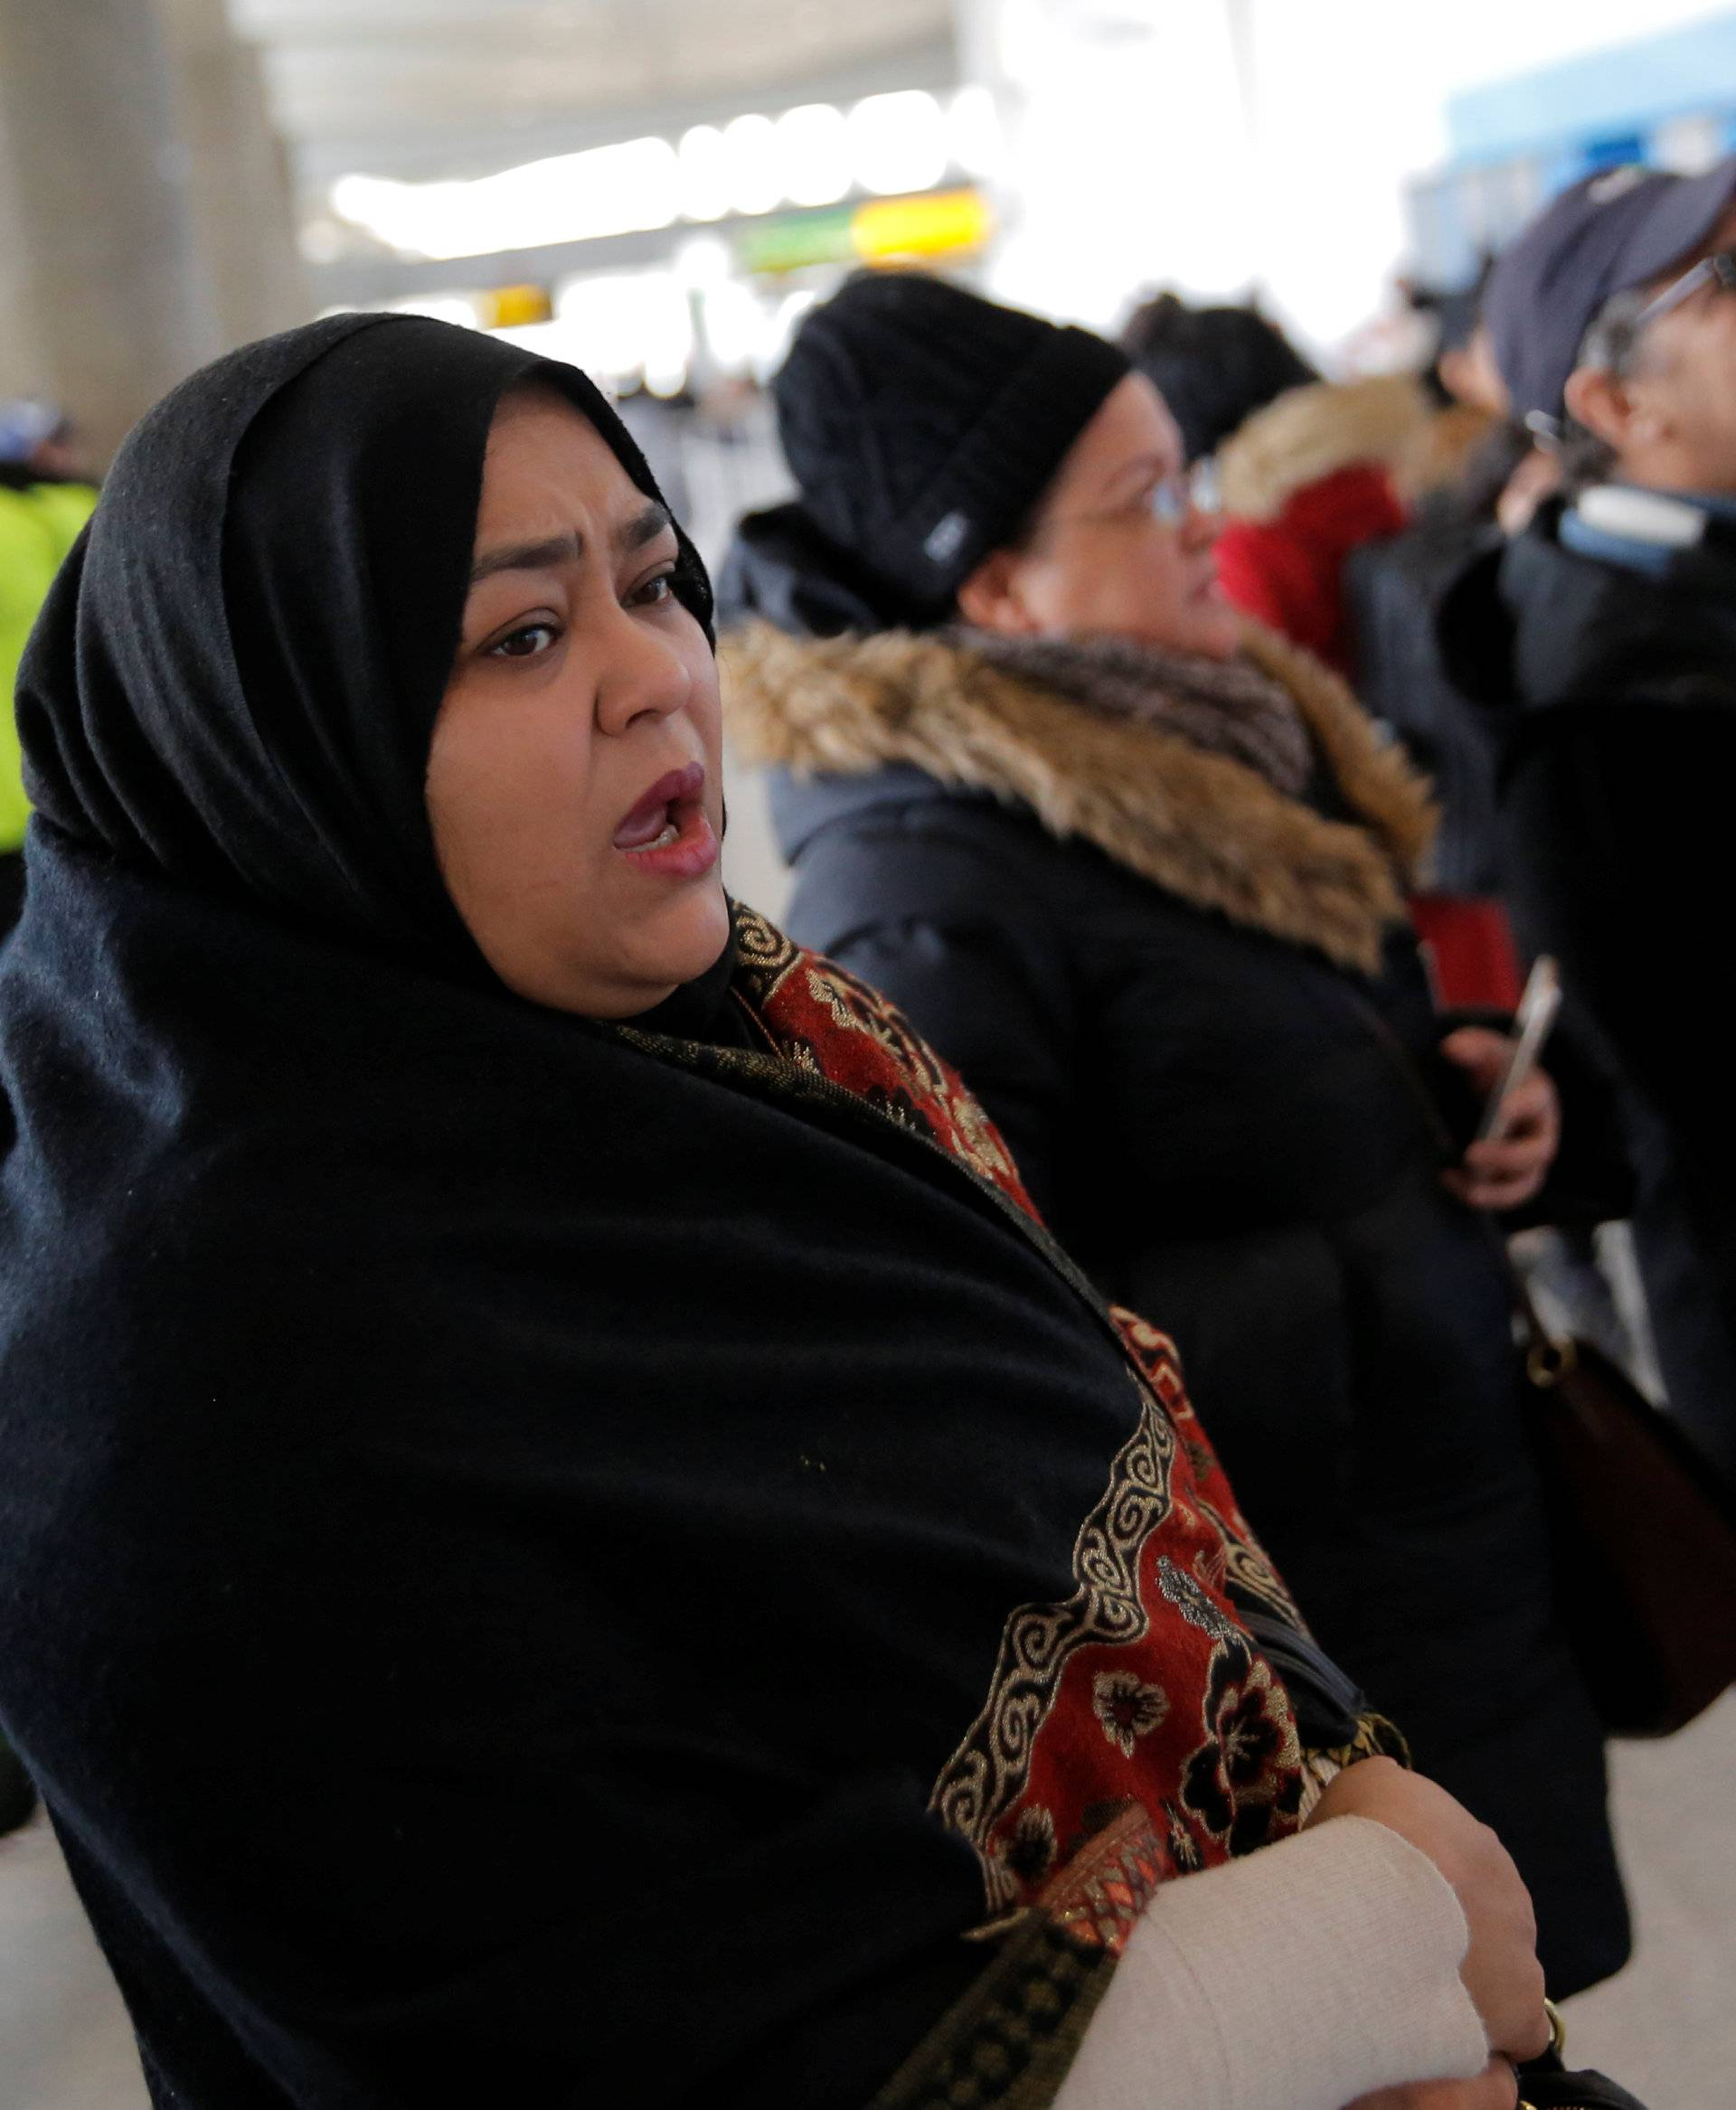 A woman waits for family to arrive at John F. Kennedy International Airport in Queens, New York, U.S.